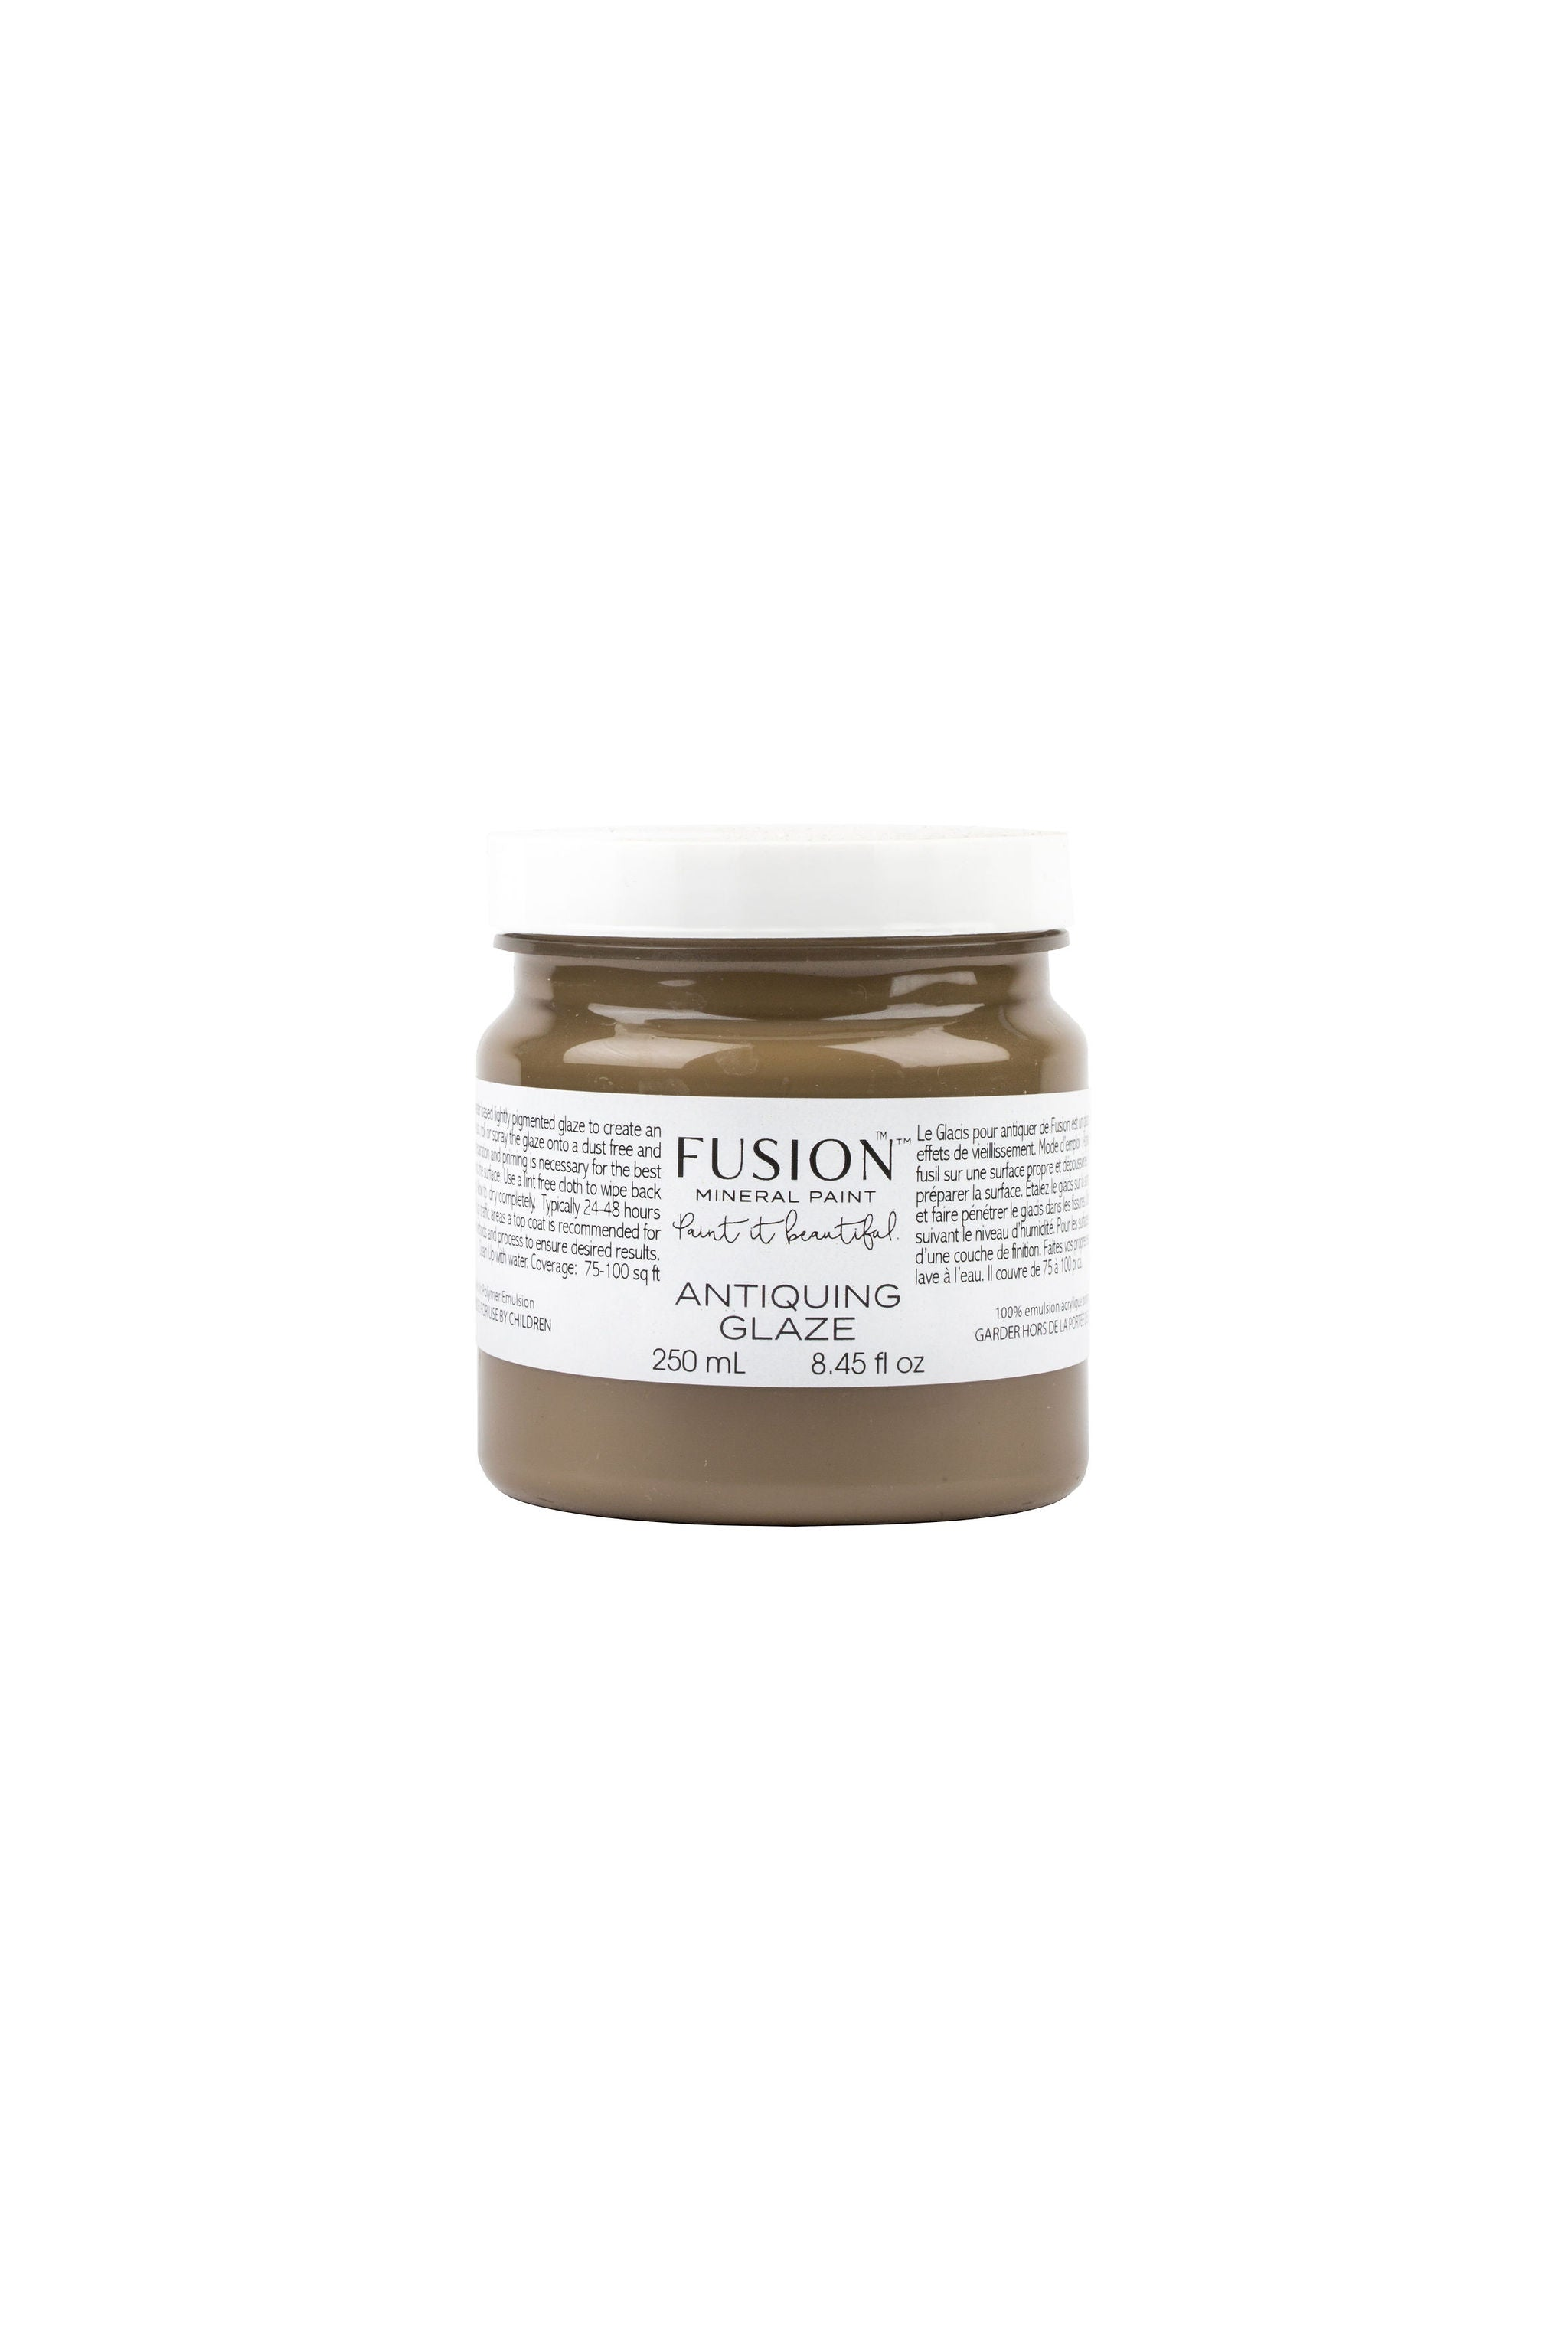 Antiquing Glaze - Fusion Mineral Paint - Where to Buy Online - Dear Olympia - Flate Rate US Shipping